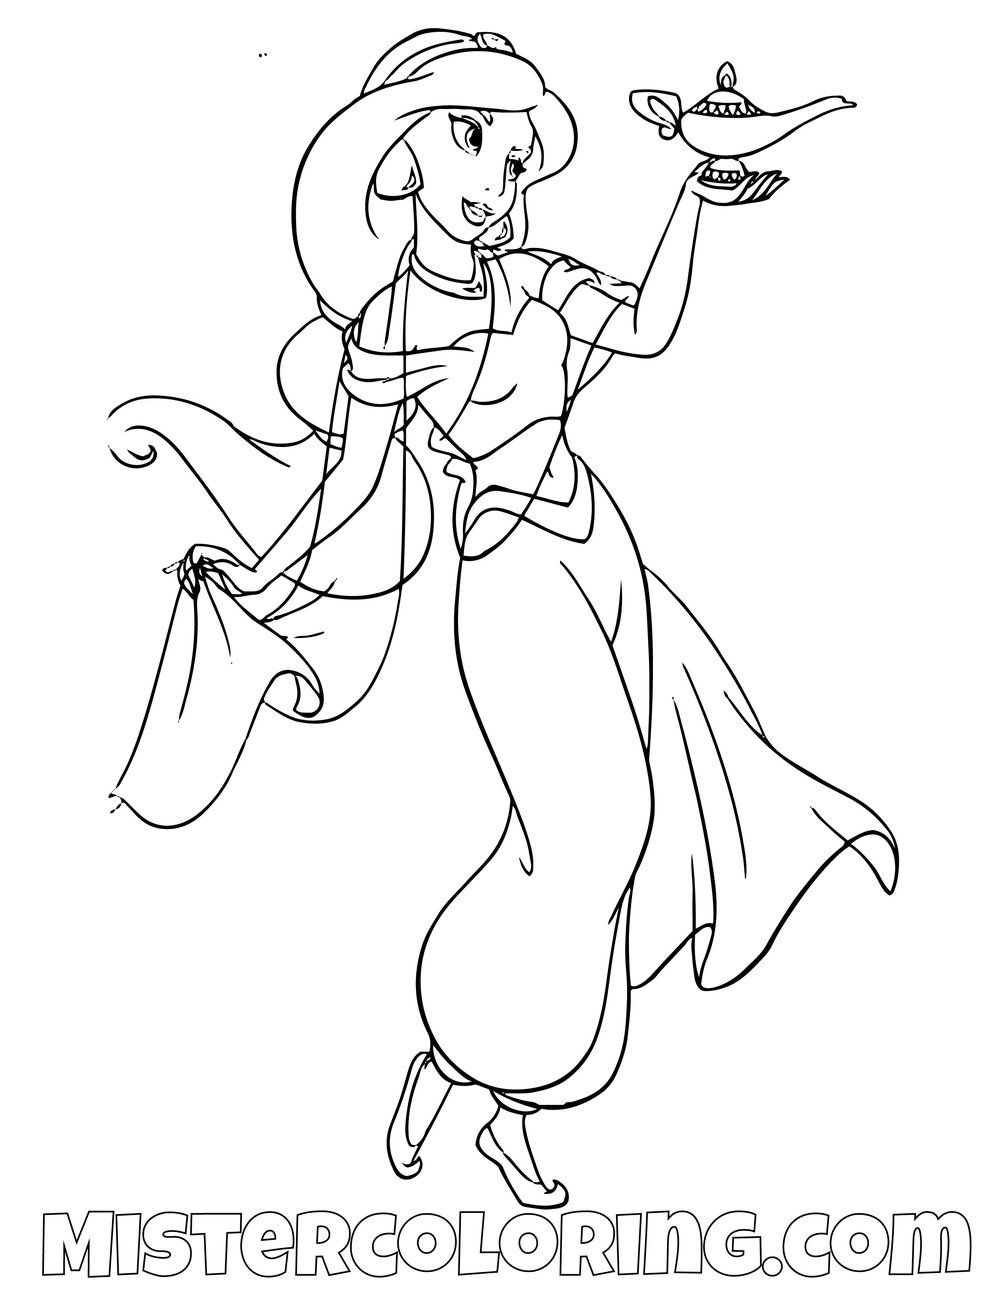 Princess Jasmine Holding Genie Lamp Aladdin Coloring Page Cartoon Coloring Pages Mermaid Coloring Pages Fairy Coloring Pages